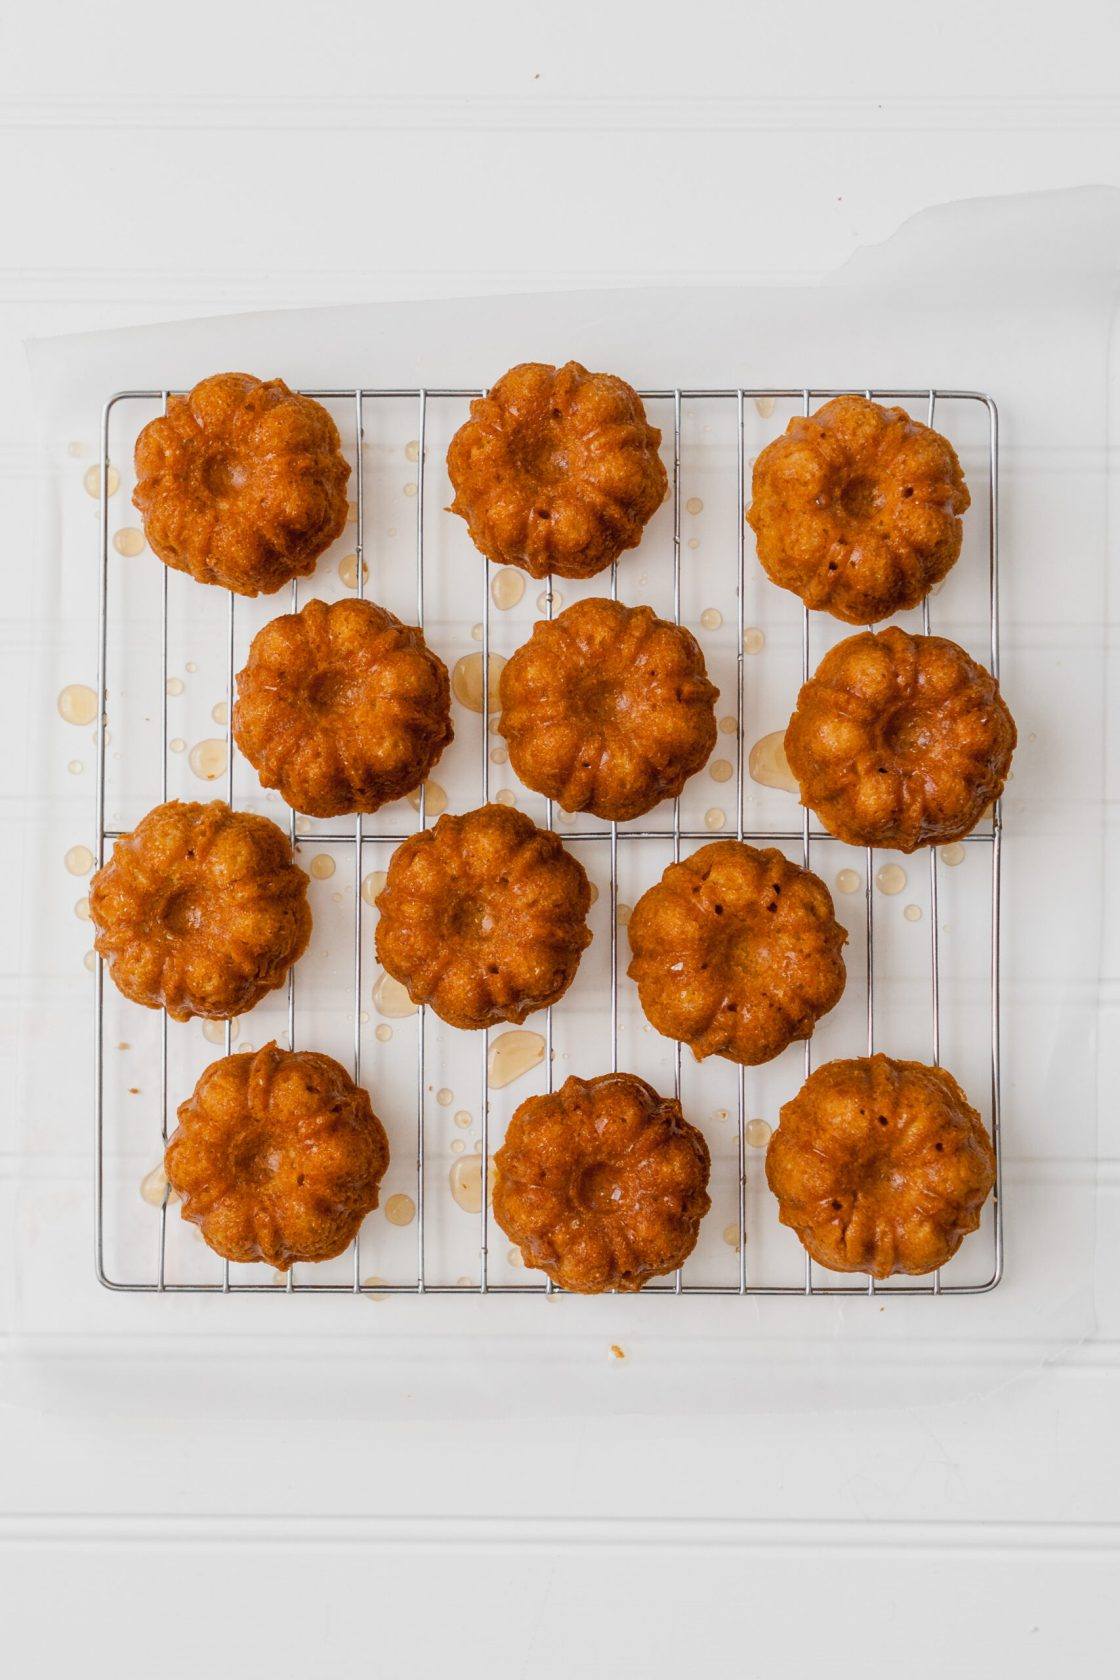 Tender tea cakes flavored with fresh grapefruit and Campari. These mini cakes are naturally sweetened with honey, easy to whip, and elegant enough for a fancy party. | from Lauren Grant of Zestful Kitchen